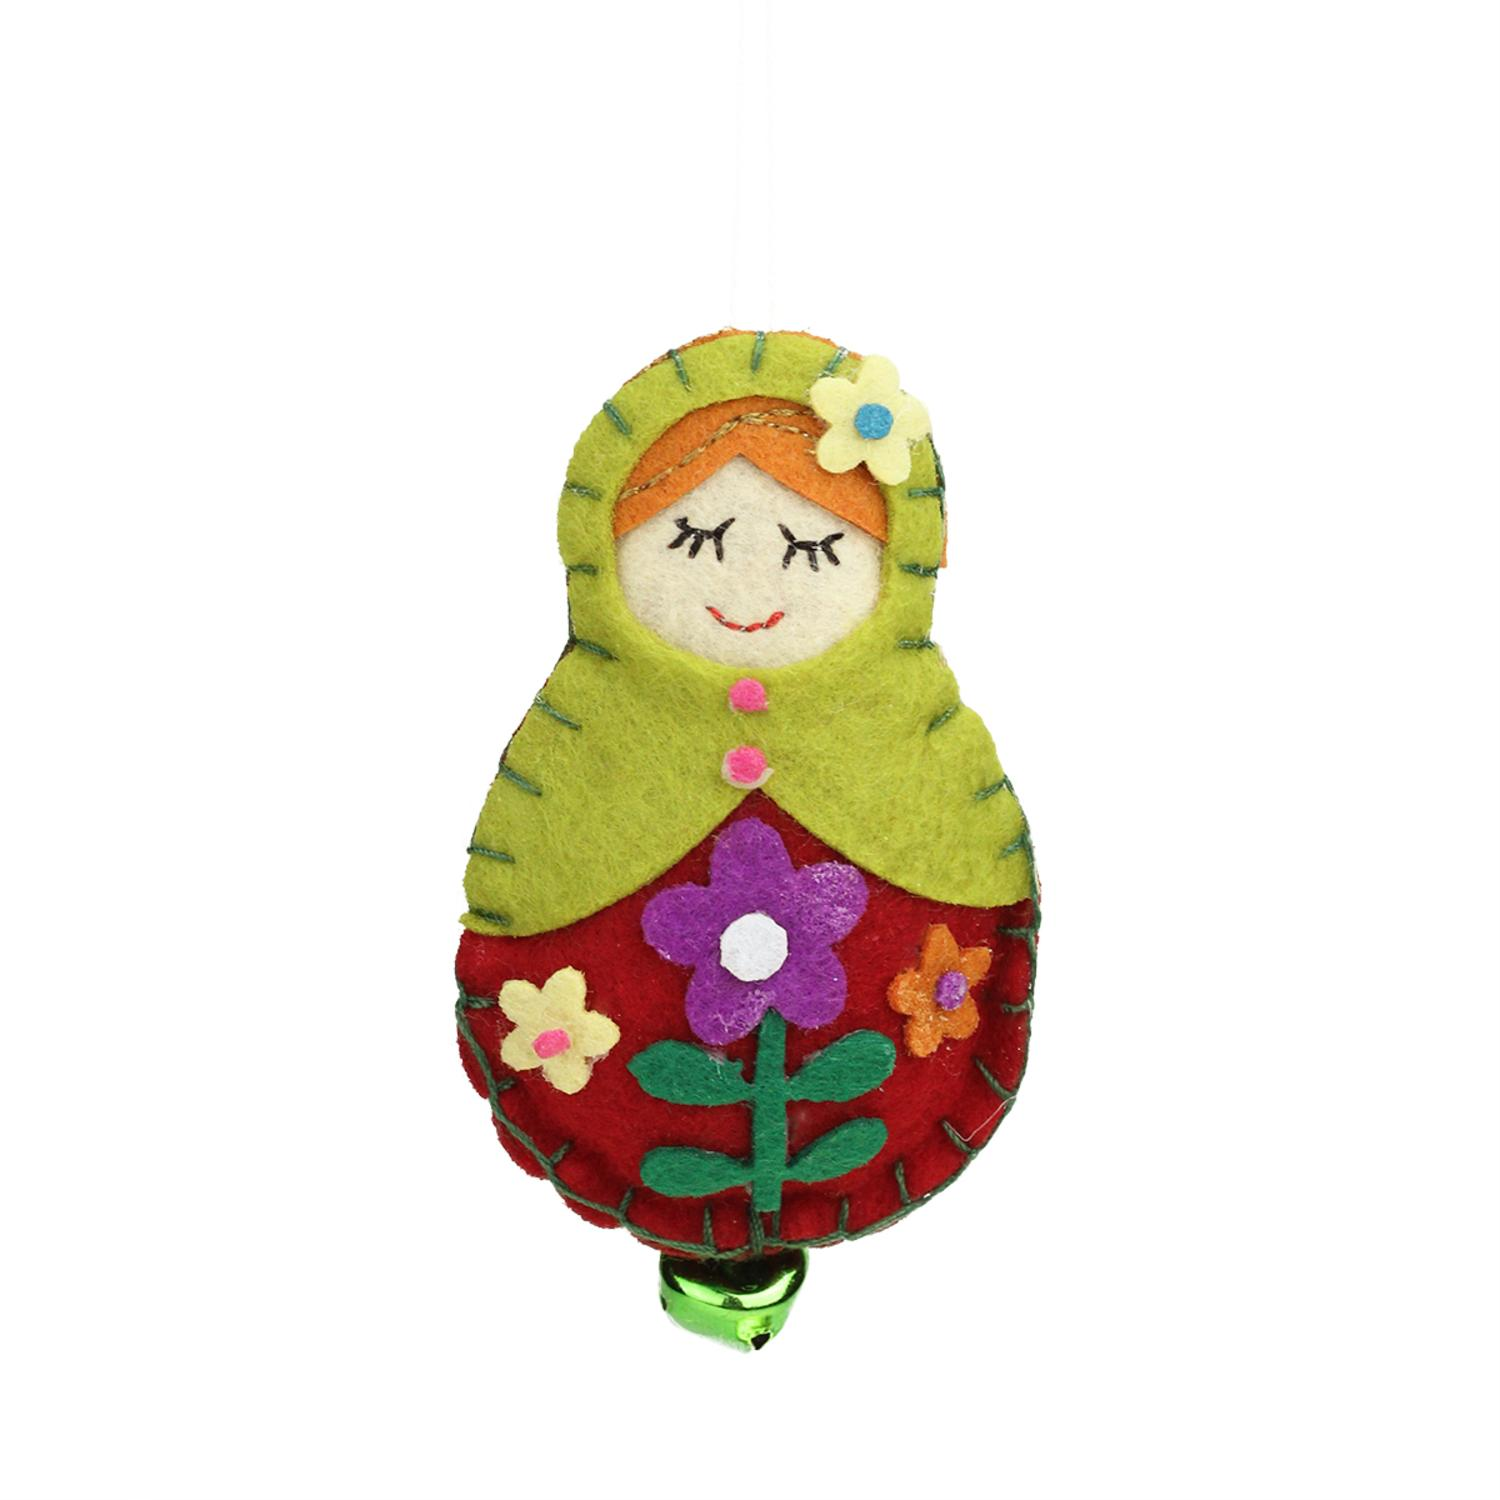 """Ganz 4"""" Plush Felt Doll with Jingle Bell Christmas Ornament - Red/Green"""